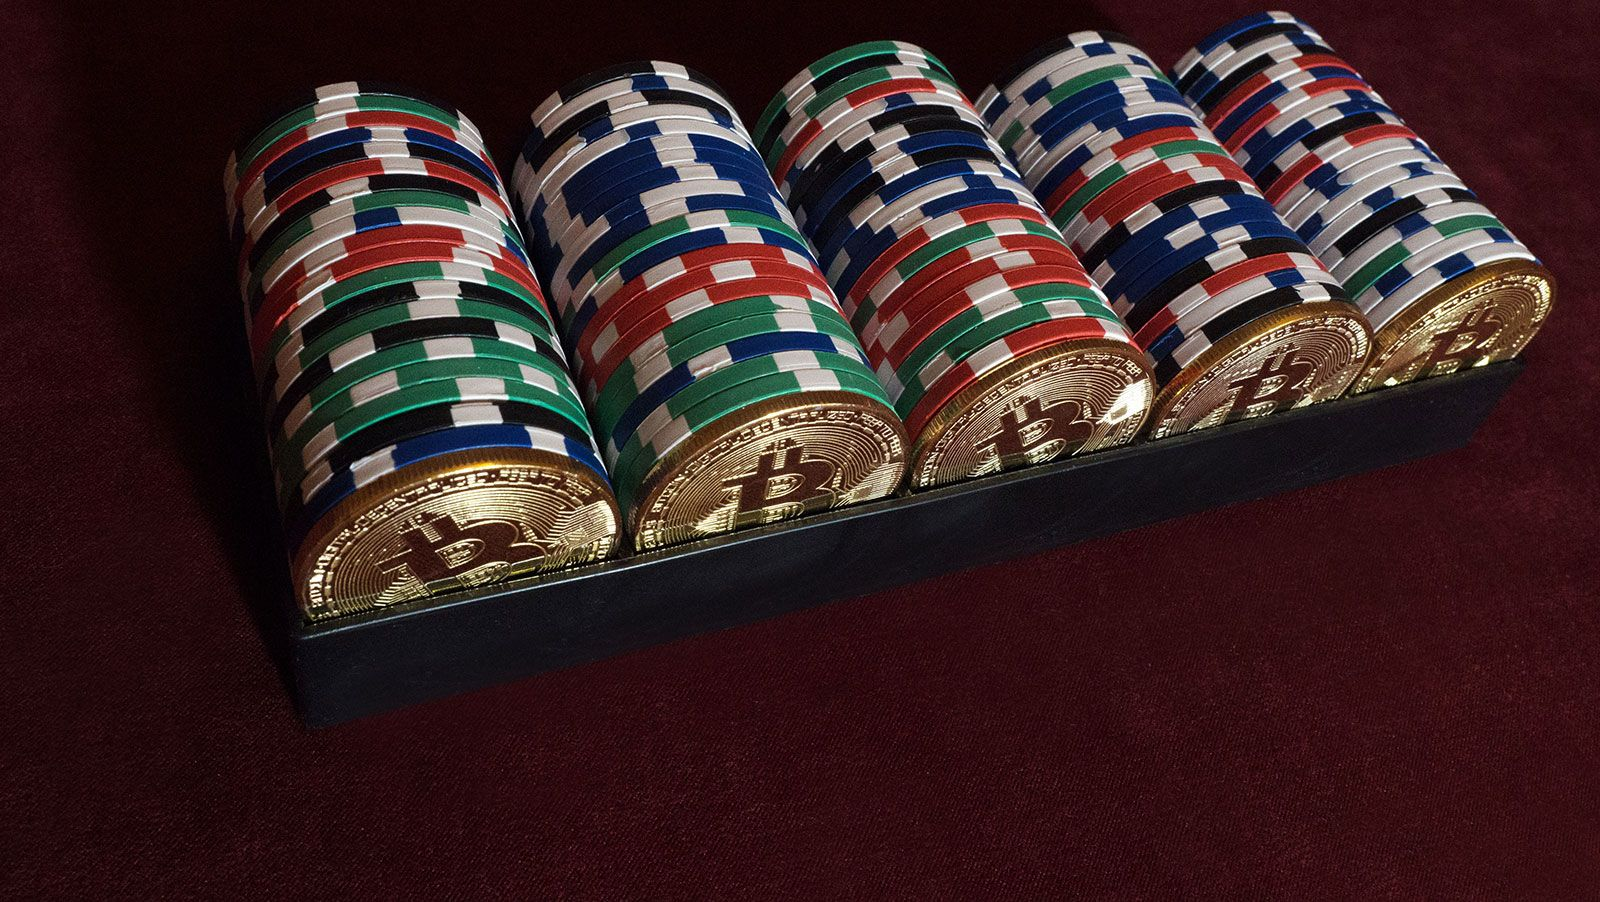 Online poker and cryptocurrency: A match made in heaven